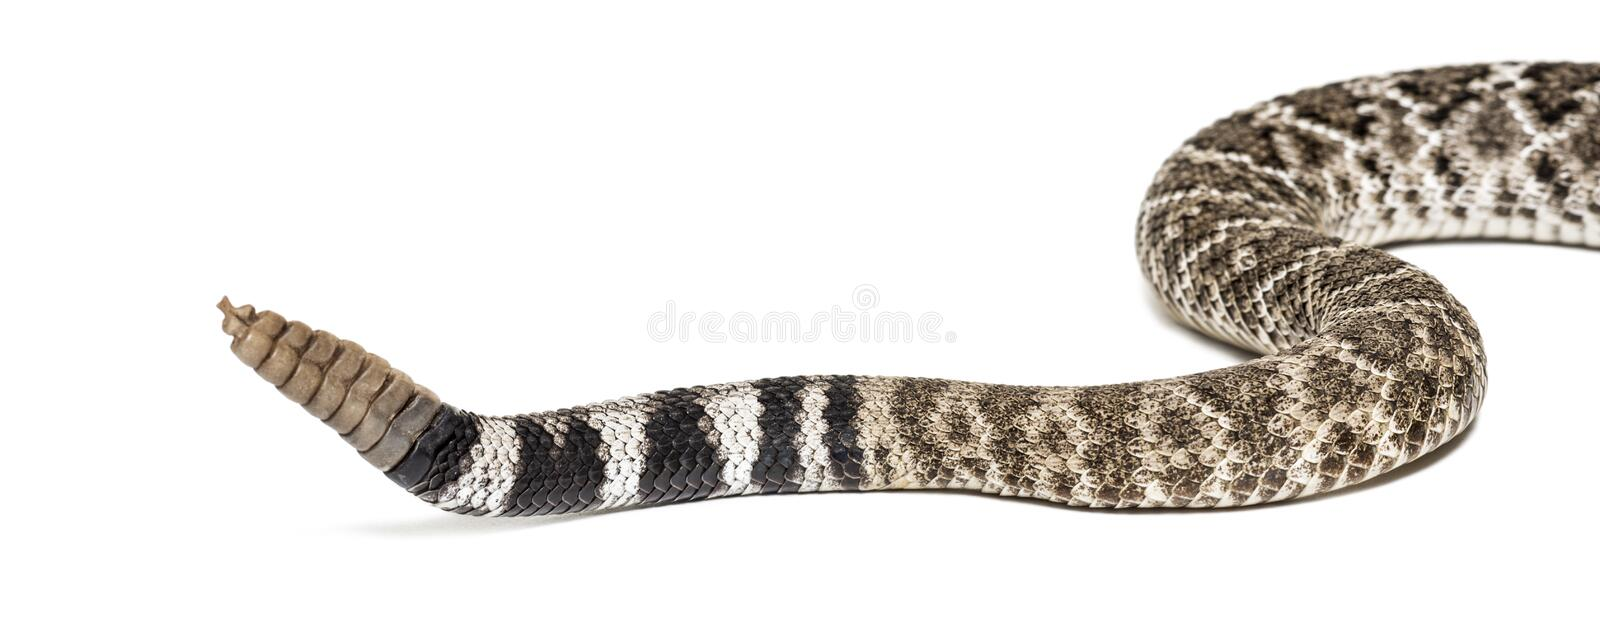 Western diamondback rattlesnake or Texas diamond-back in front of white. Crotalus atrox, western diamondback rattlesnake or Texas diamond-back, venomous snake stock images